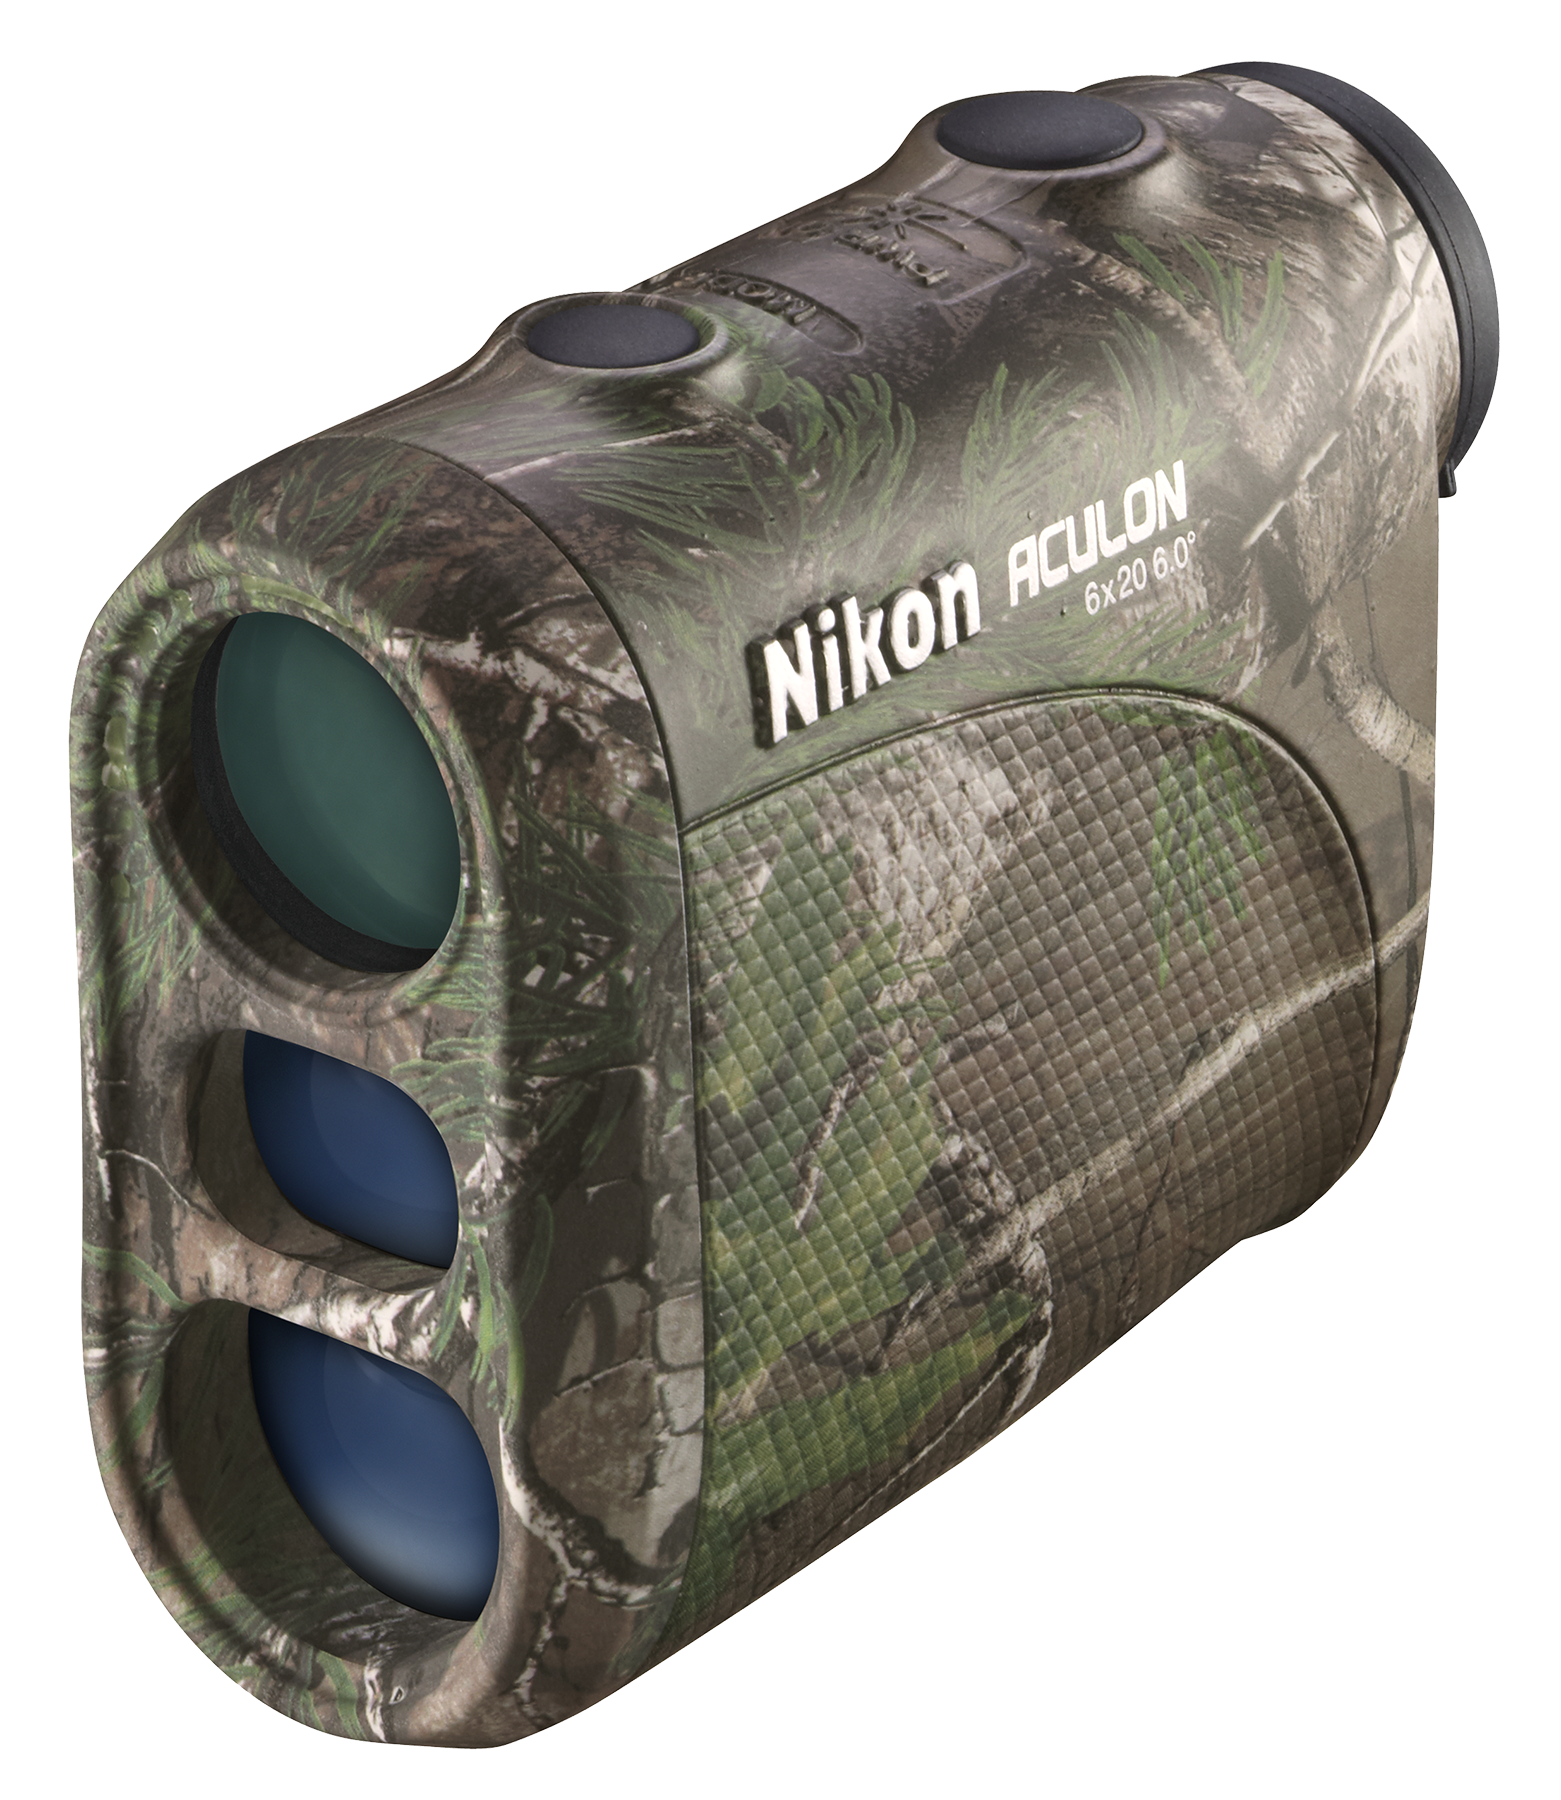 NIK 8398  LSR 550  Aculon Rangefinder 6x20mm 6 degrees FOV 18mm Green Camo